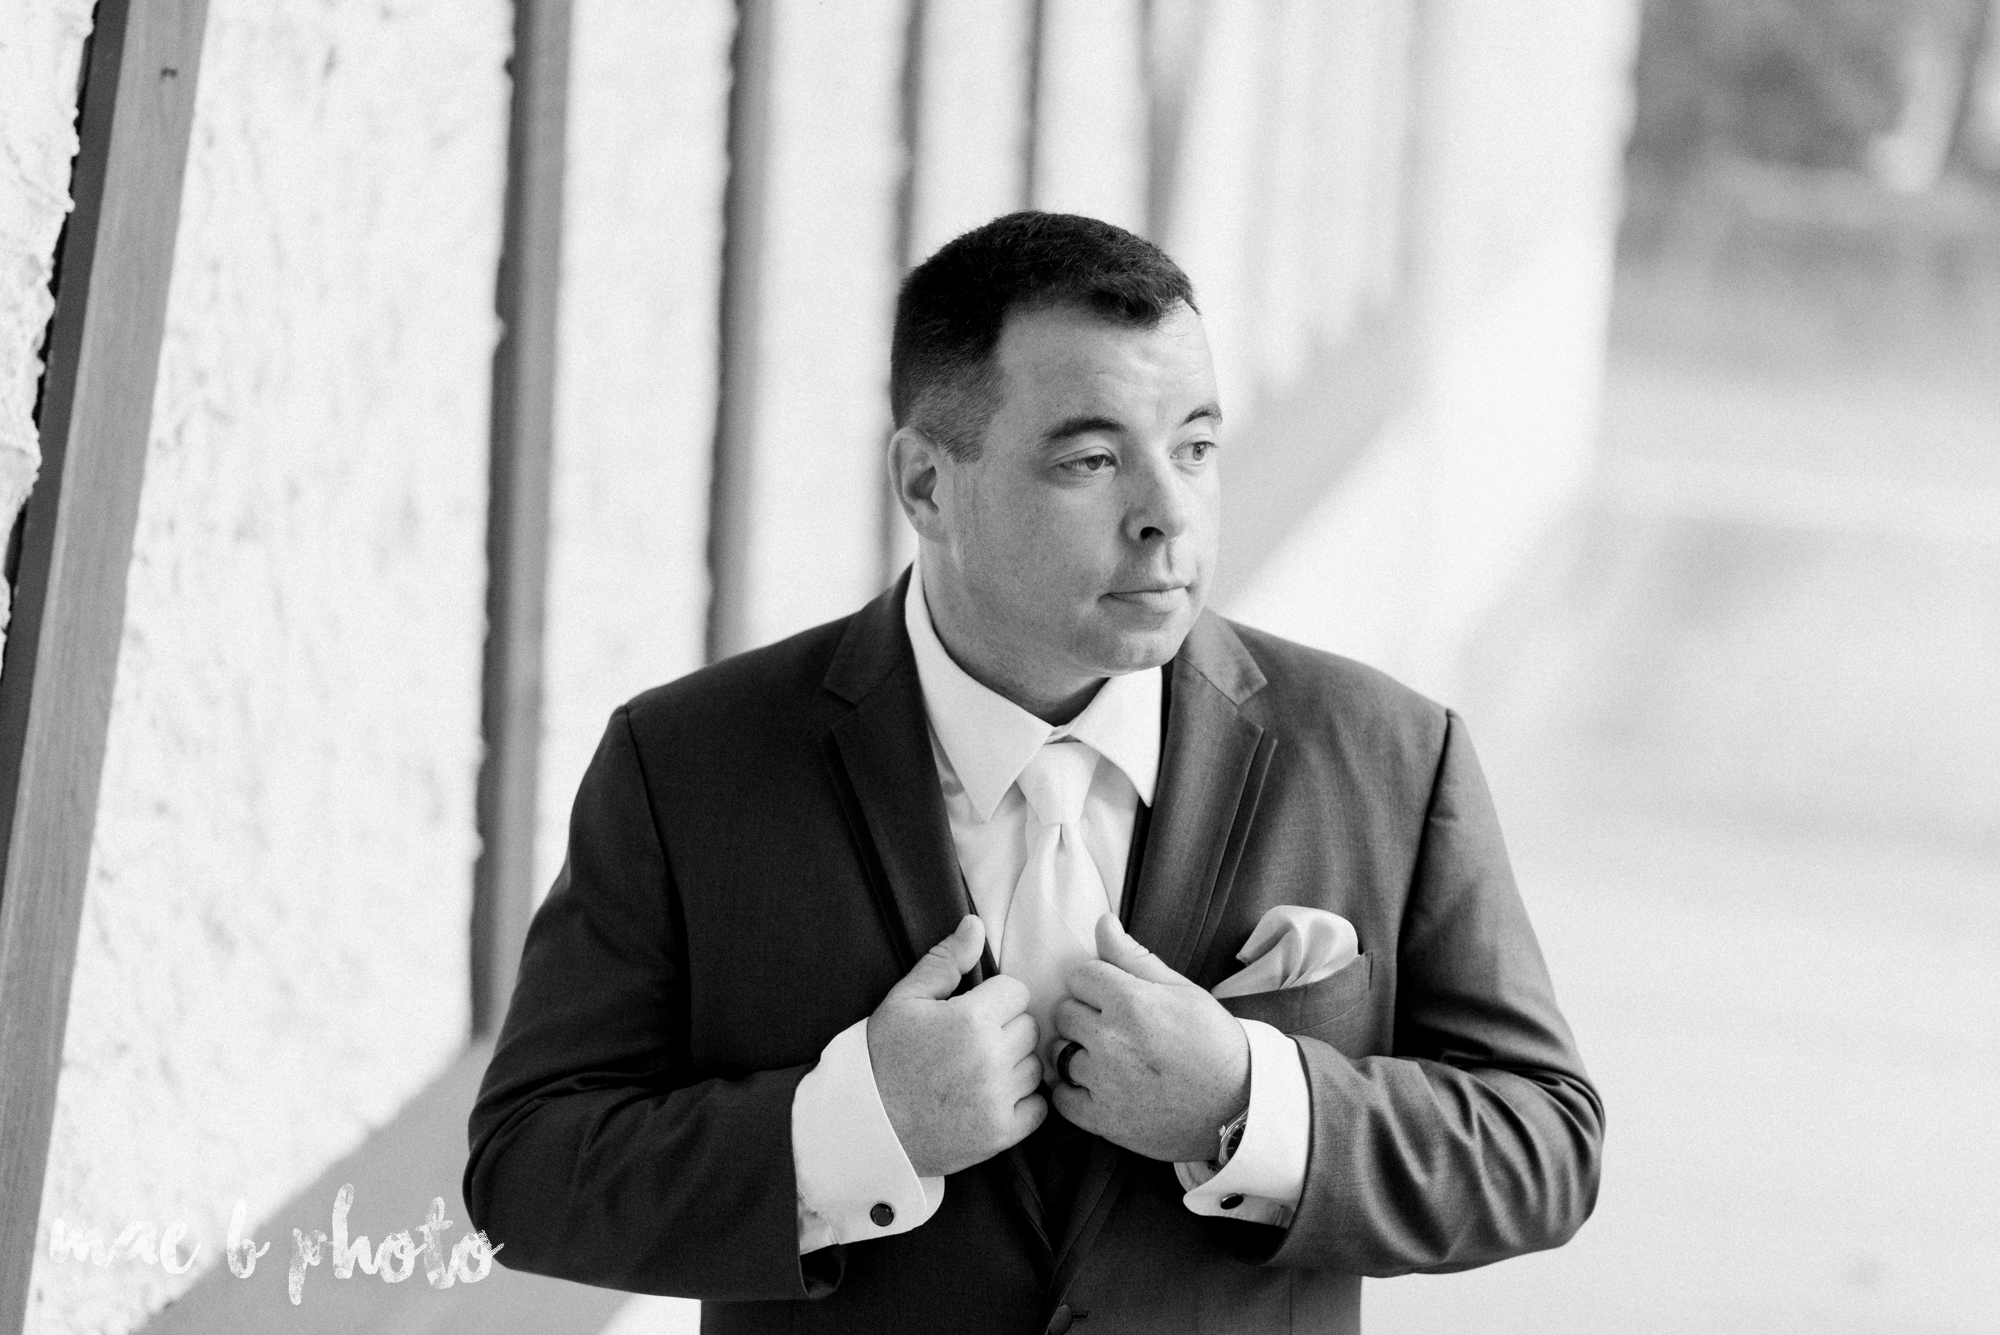 kristy and matt's summer wedding at the embassy in youngstown ohio photographed by youngstown wedding photographer mae b photo-4.jpg